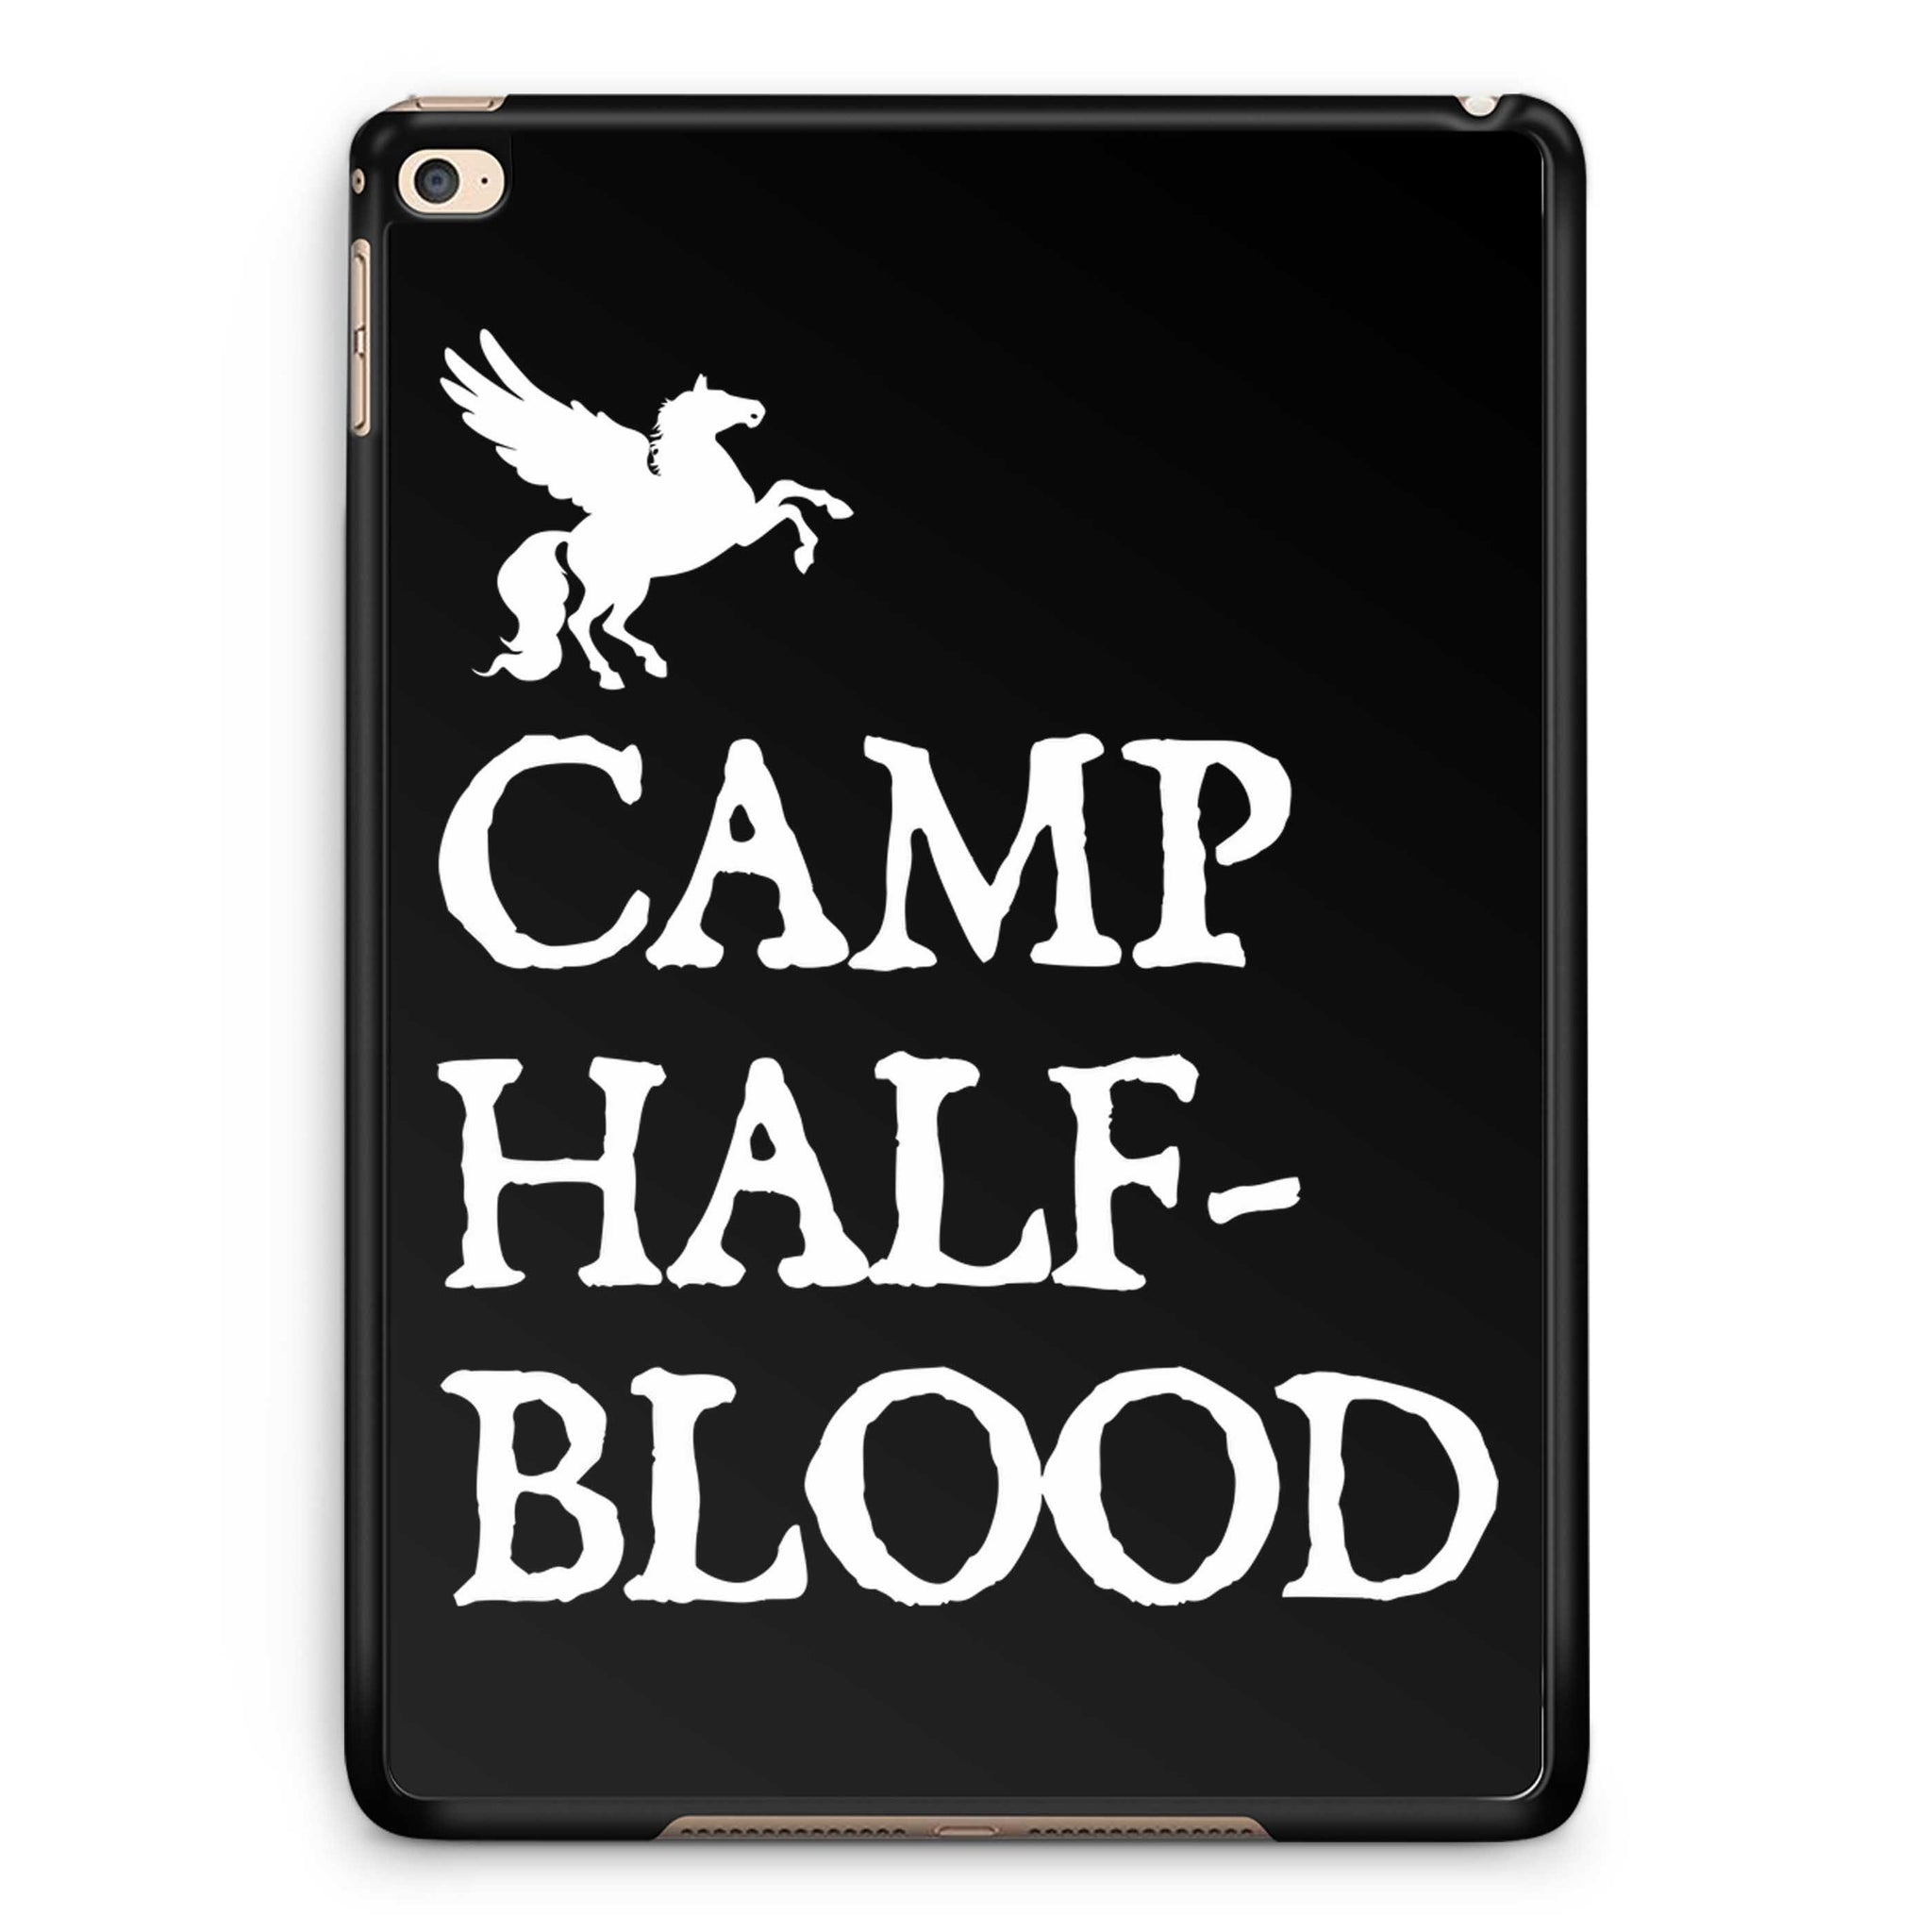 Camp Half Blood Cosplay iPad Air 2| iPad 2 / 3 / 4 | iPad Mini / Mini 2 Case